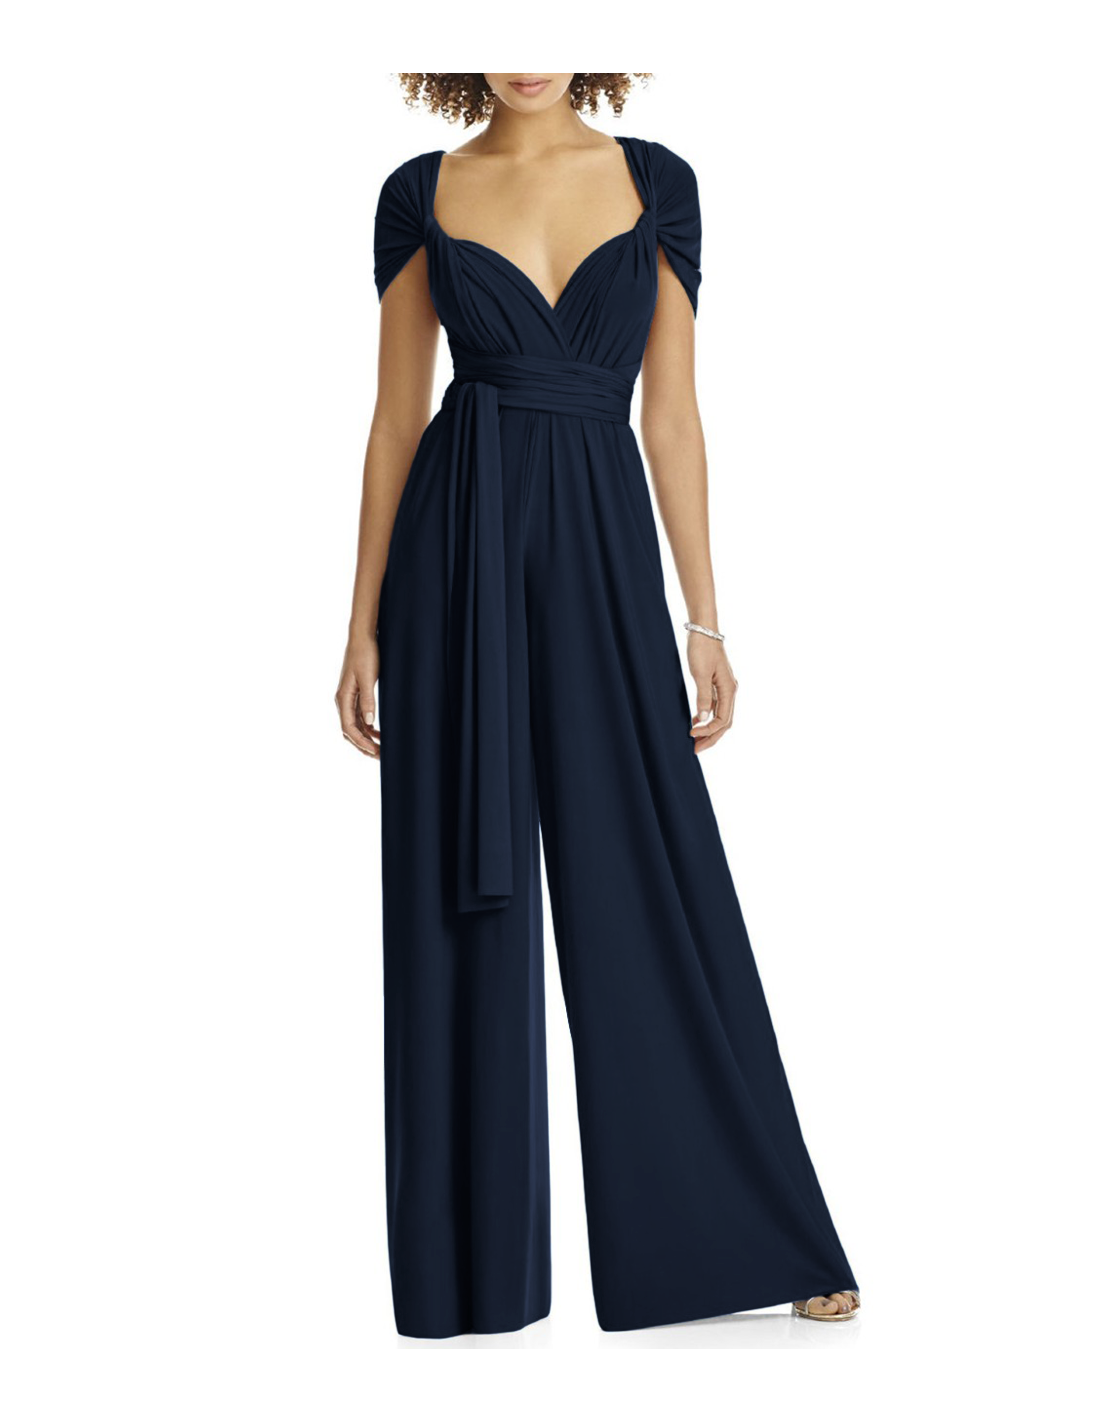 77117316179 New Collection  Dress and Charm wide leg Convertible Bridesmaid Jumpsuit  for weddings lets any bridesmaid